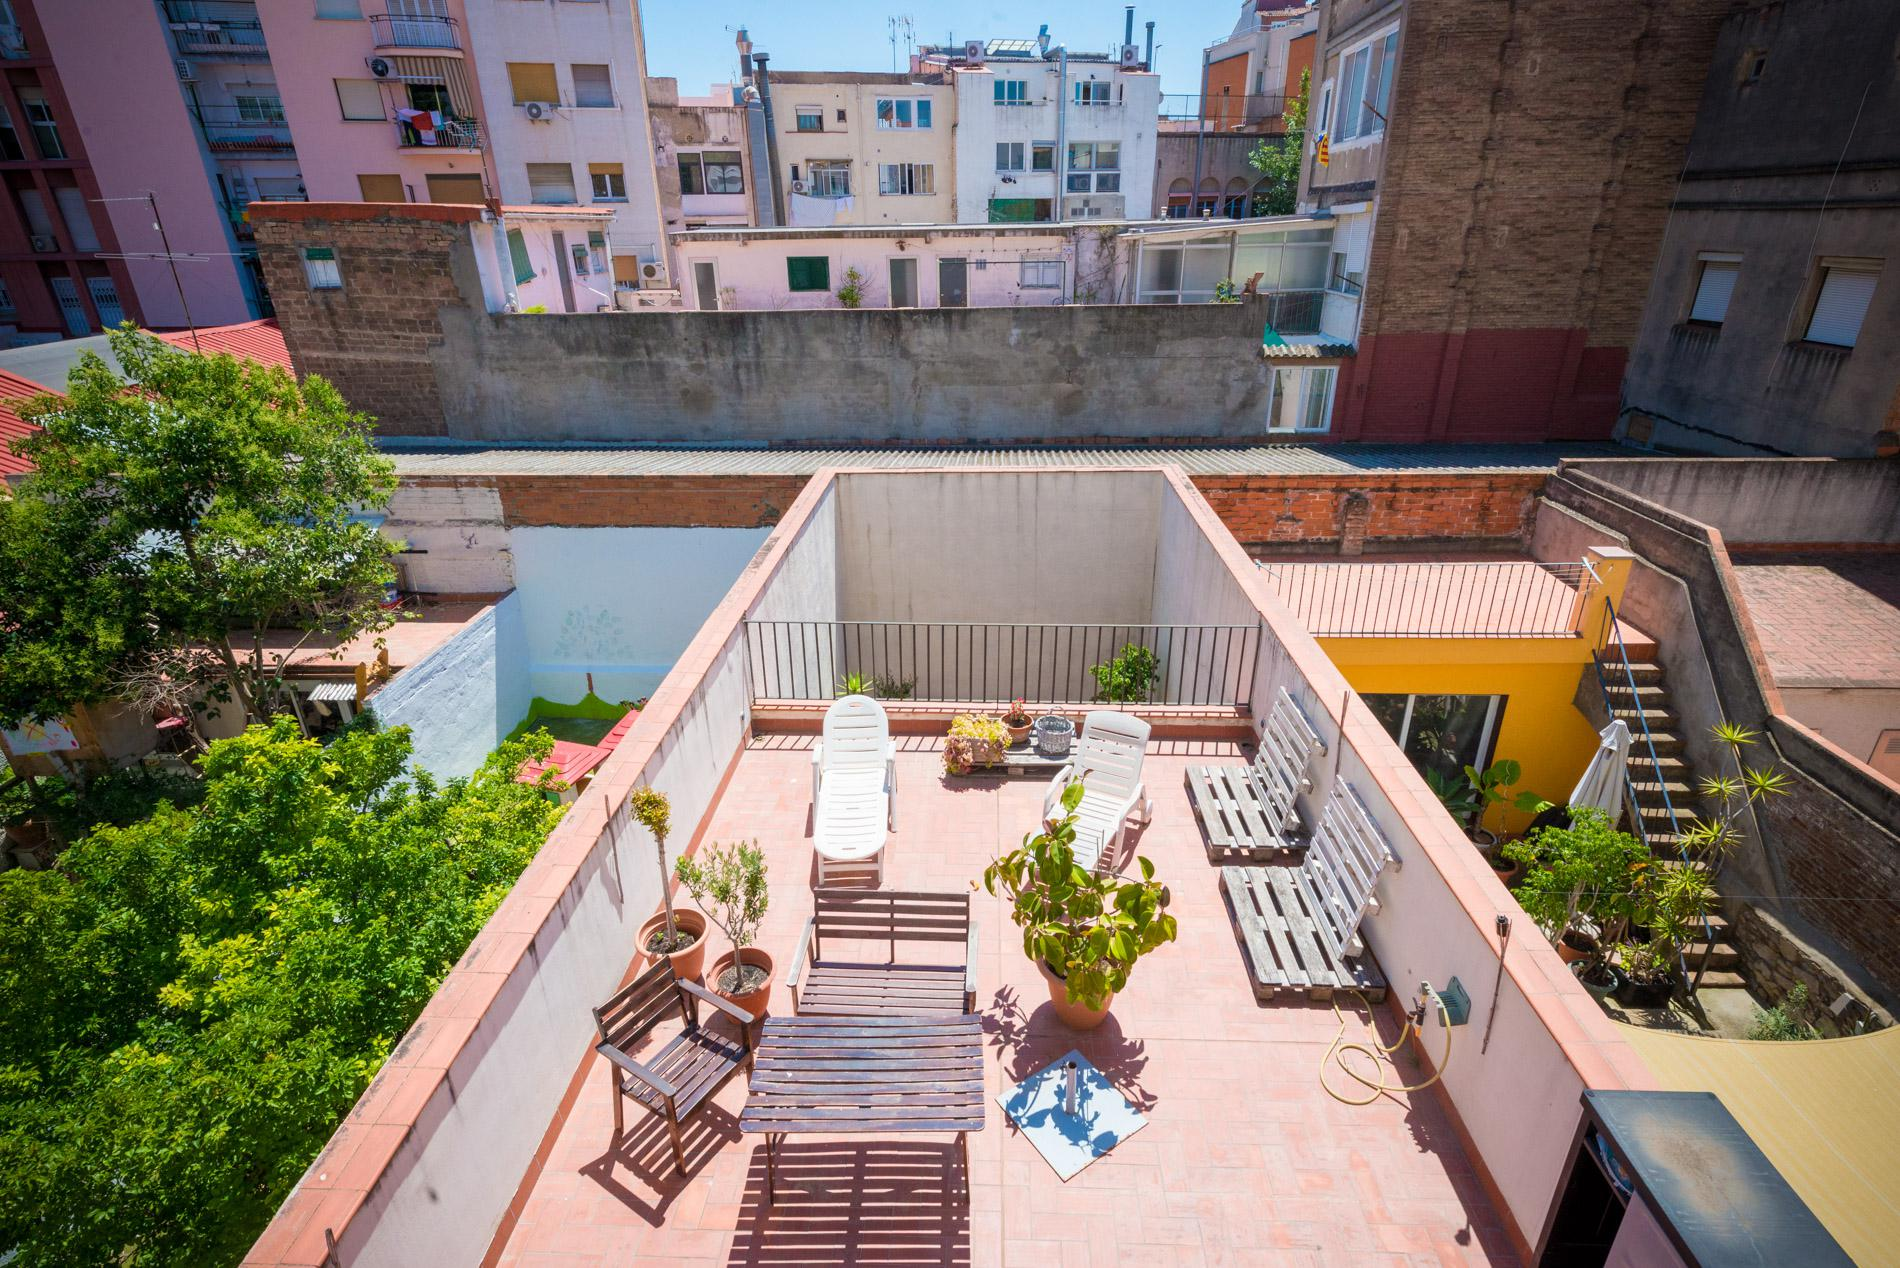 239277 Semi-detached house for sale in Sants-Montjuïc, Sants 3